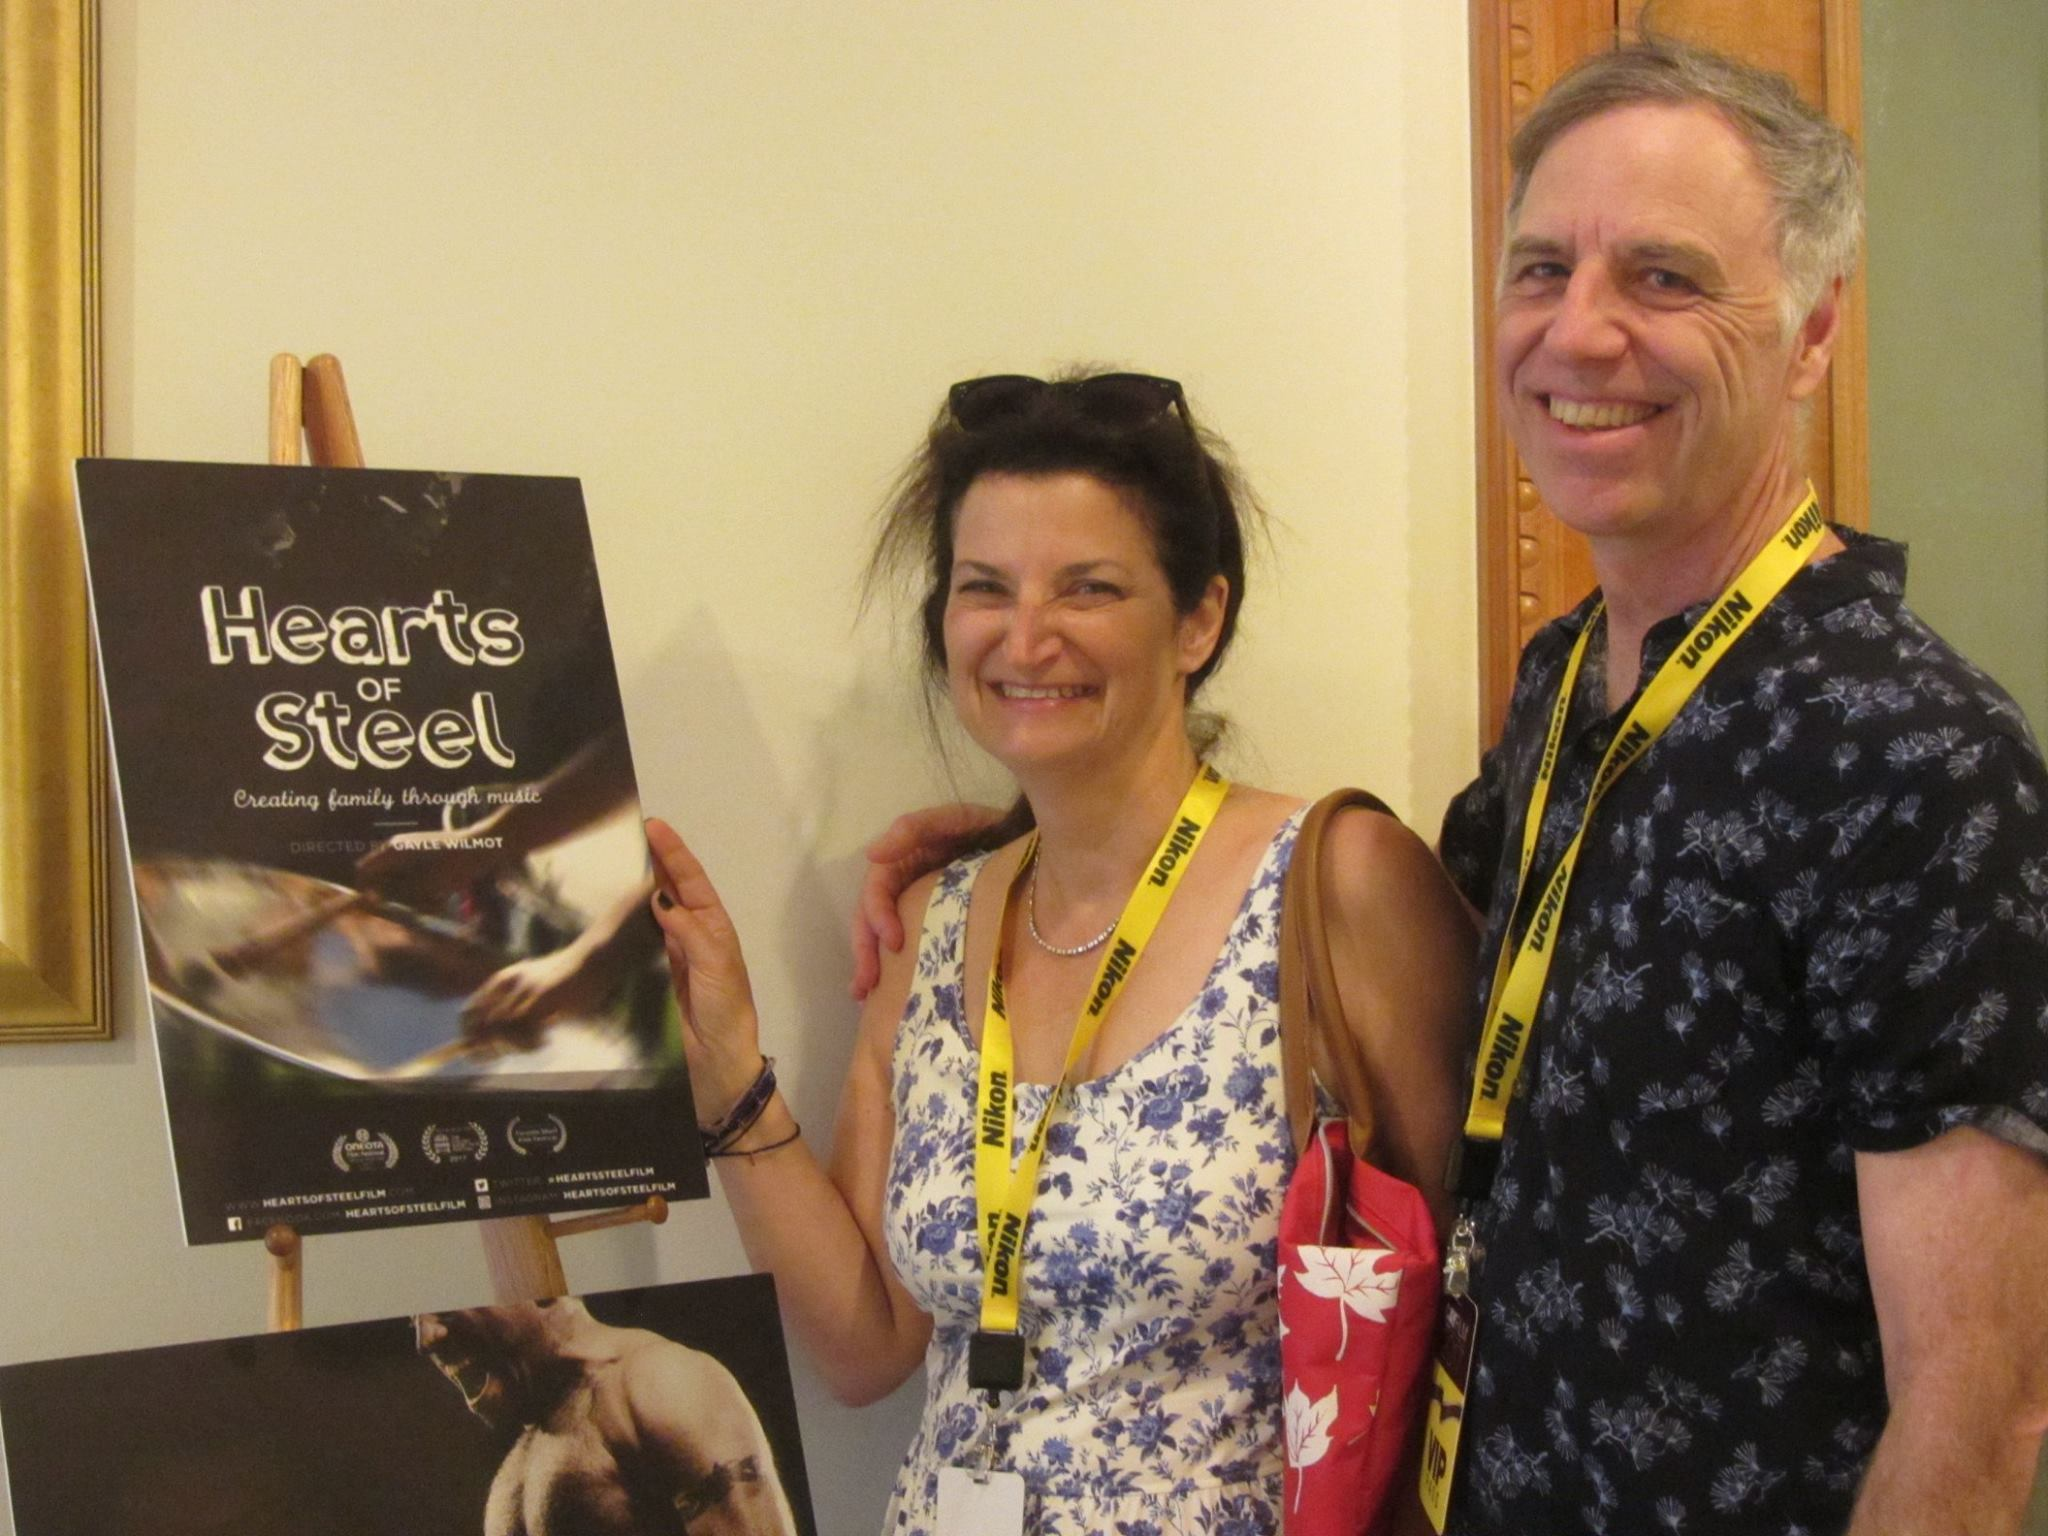 Gayle Wilmot and Kim Davidson attend the Hearts of Steel screening at Cayfilm in the Cayman Islands